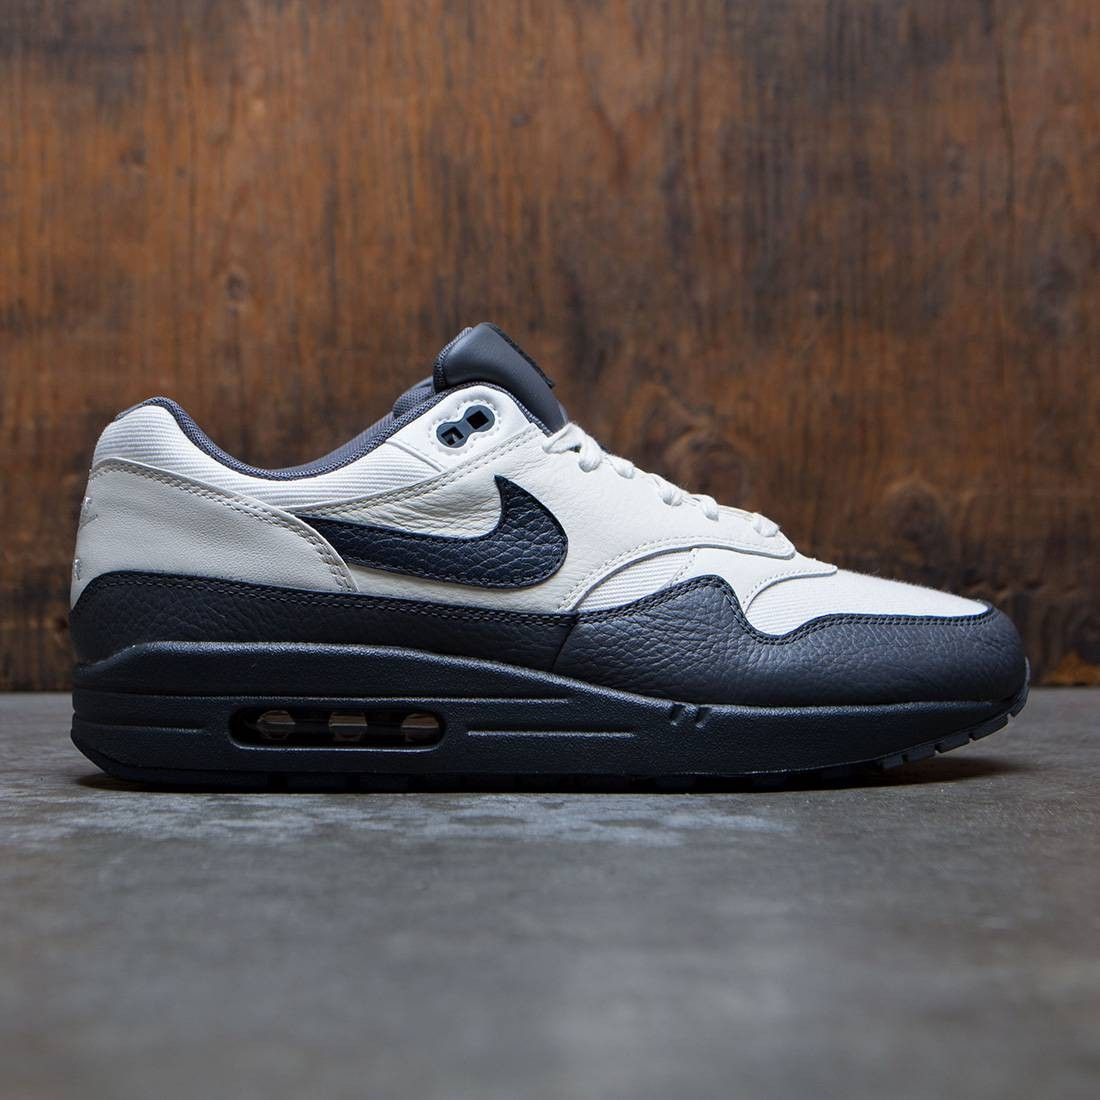 Nike Men Air Max 1 Premium (sail dark obsidian dark grey)